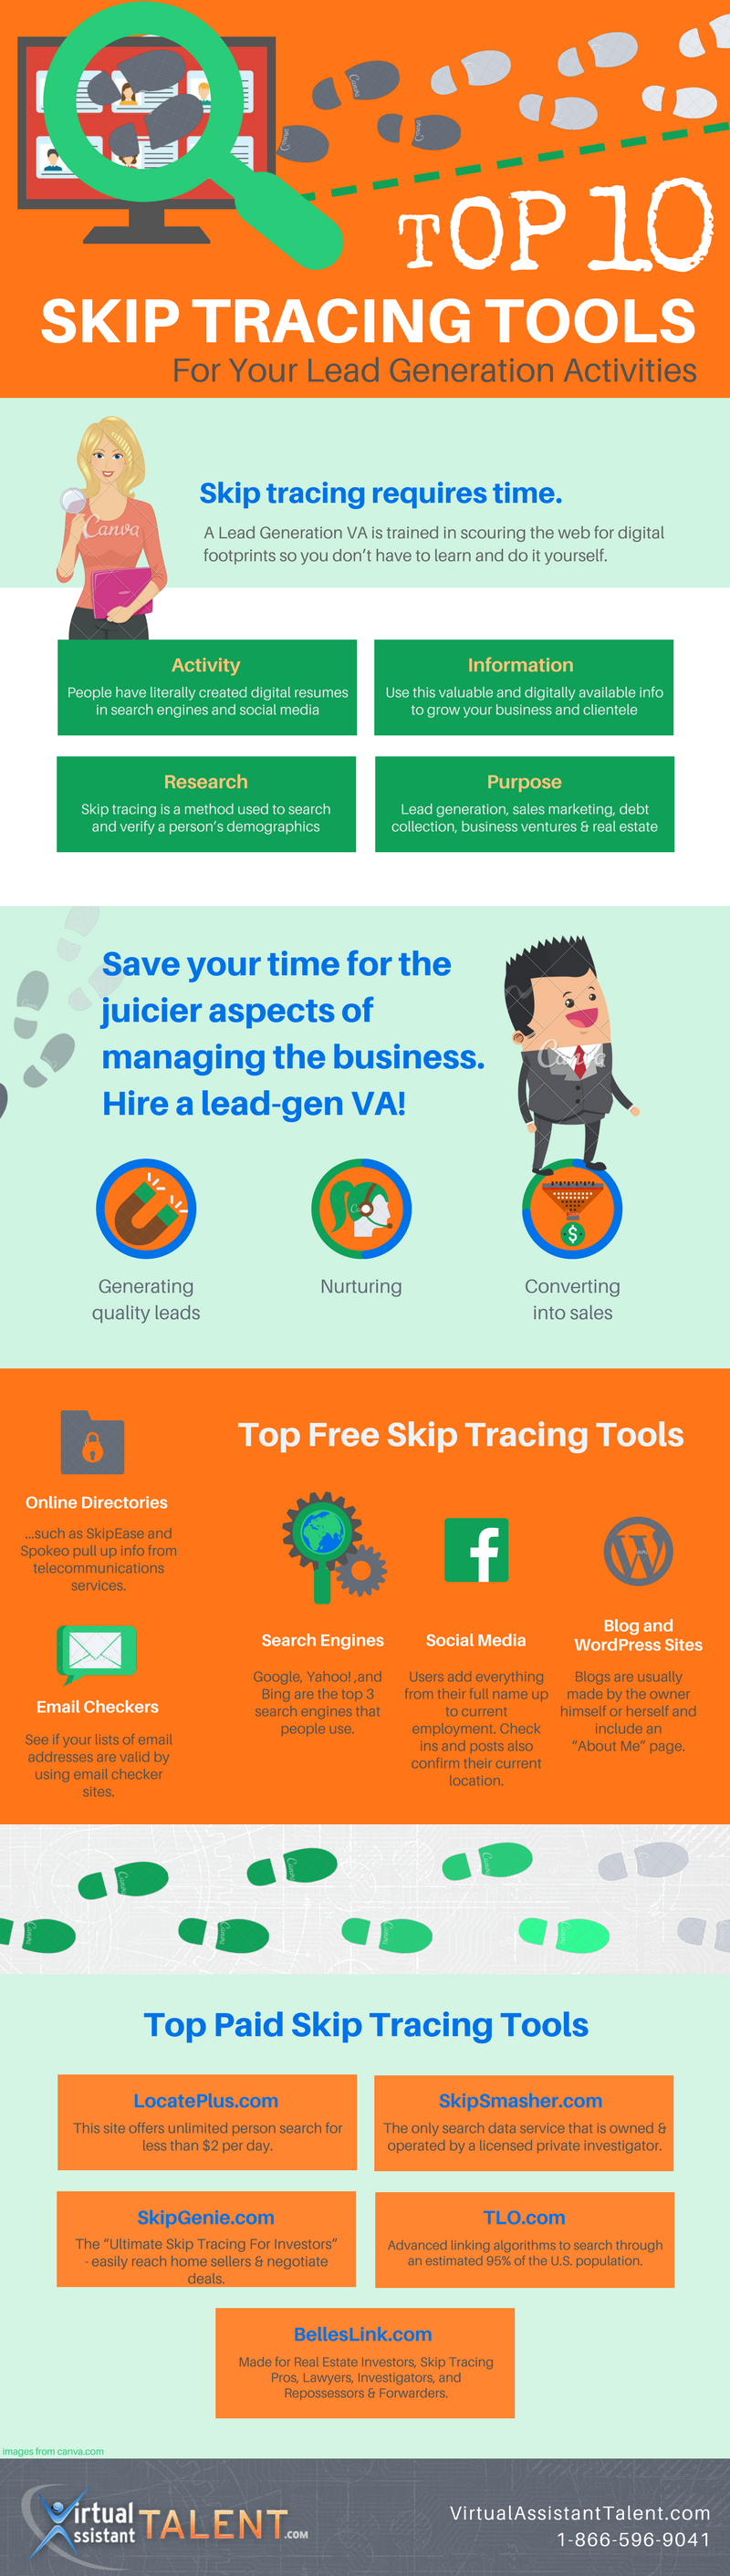 Top 10 Skip Tracing Tools For Your Lead Generation Activities